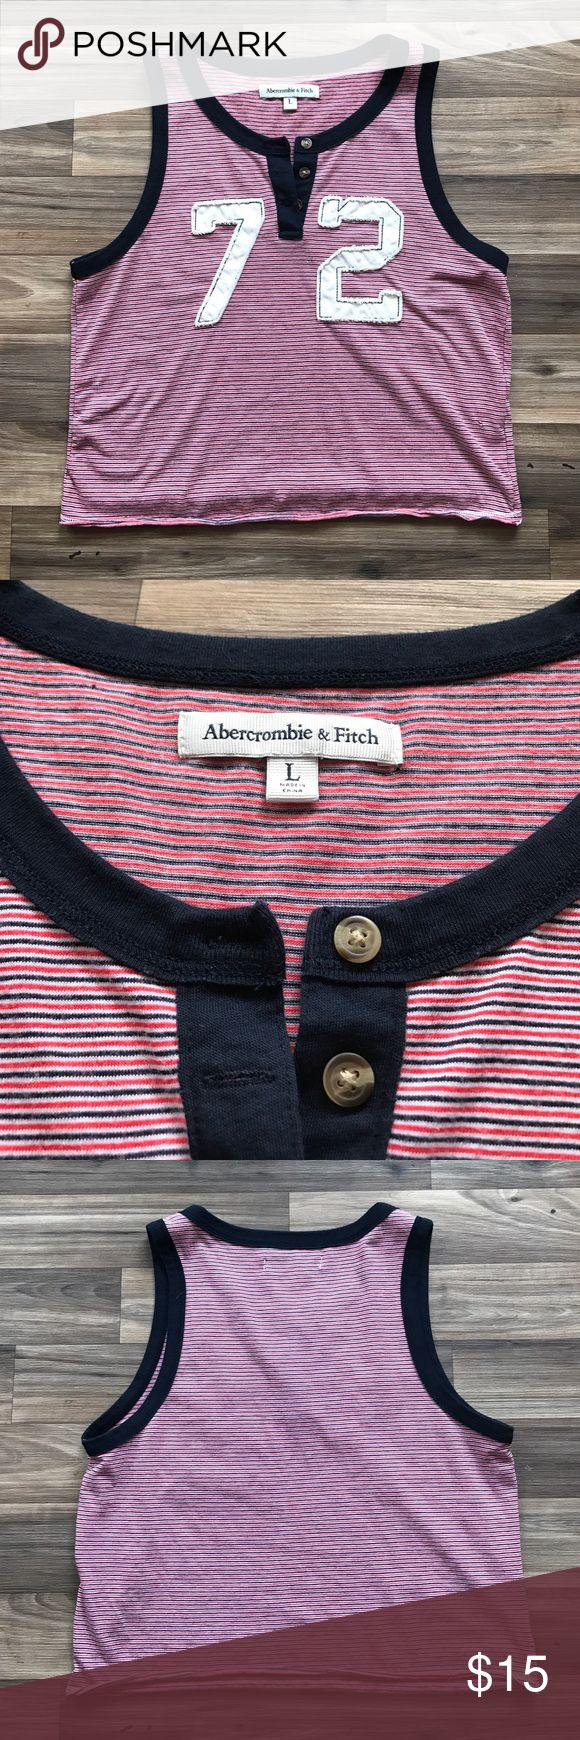 Abercrombie and Fitch cropped tank top SUPER SOFT!! Abercrombie and Fitch crop top size L (I am a size S and wore this as a full length tshirt) Abercrombie & Fitch Tops Crop Tops